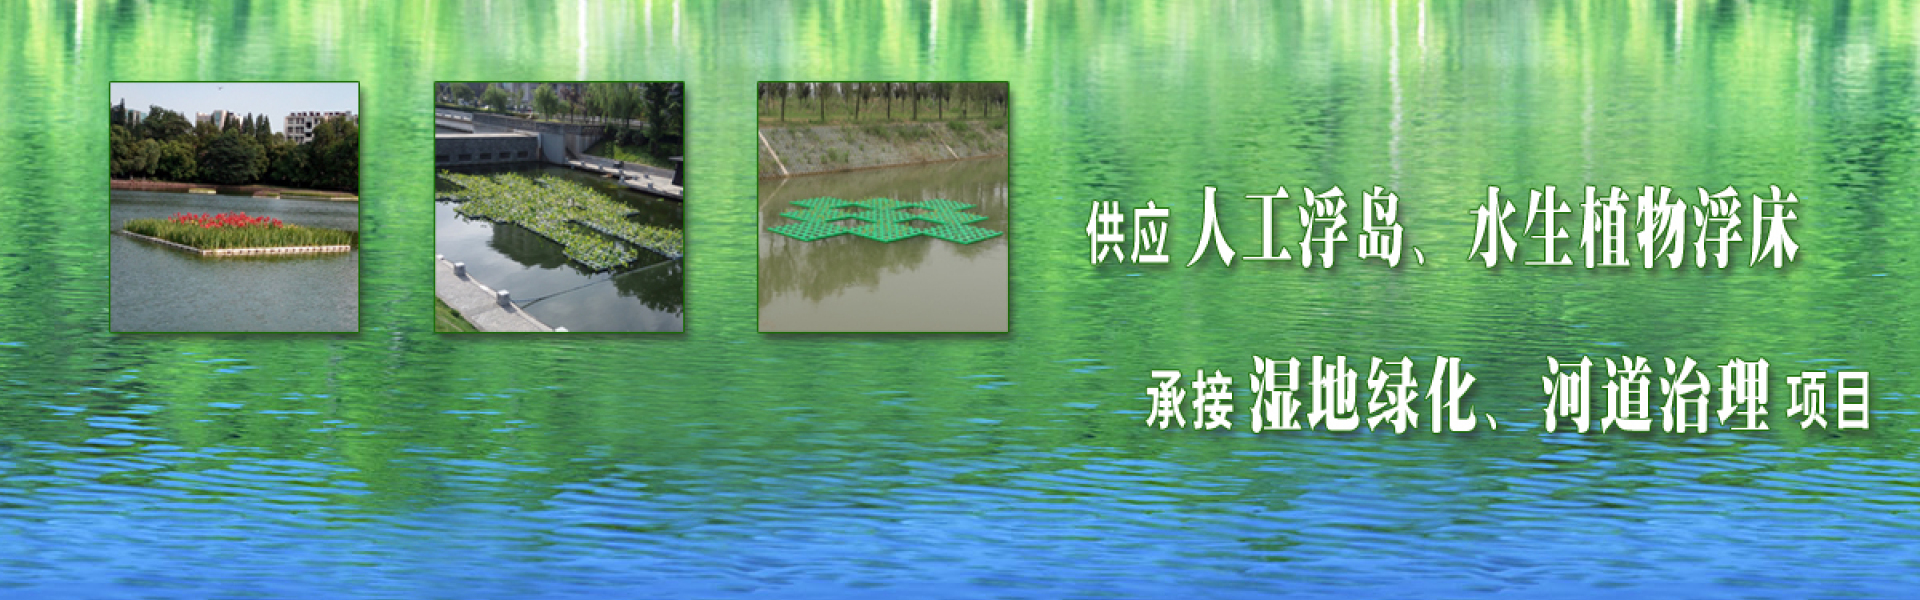 Supply artificial floating islands, floating beds of aquatic plants, undertake wetland greening, river treatment projects.